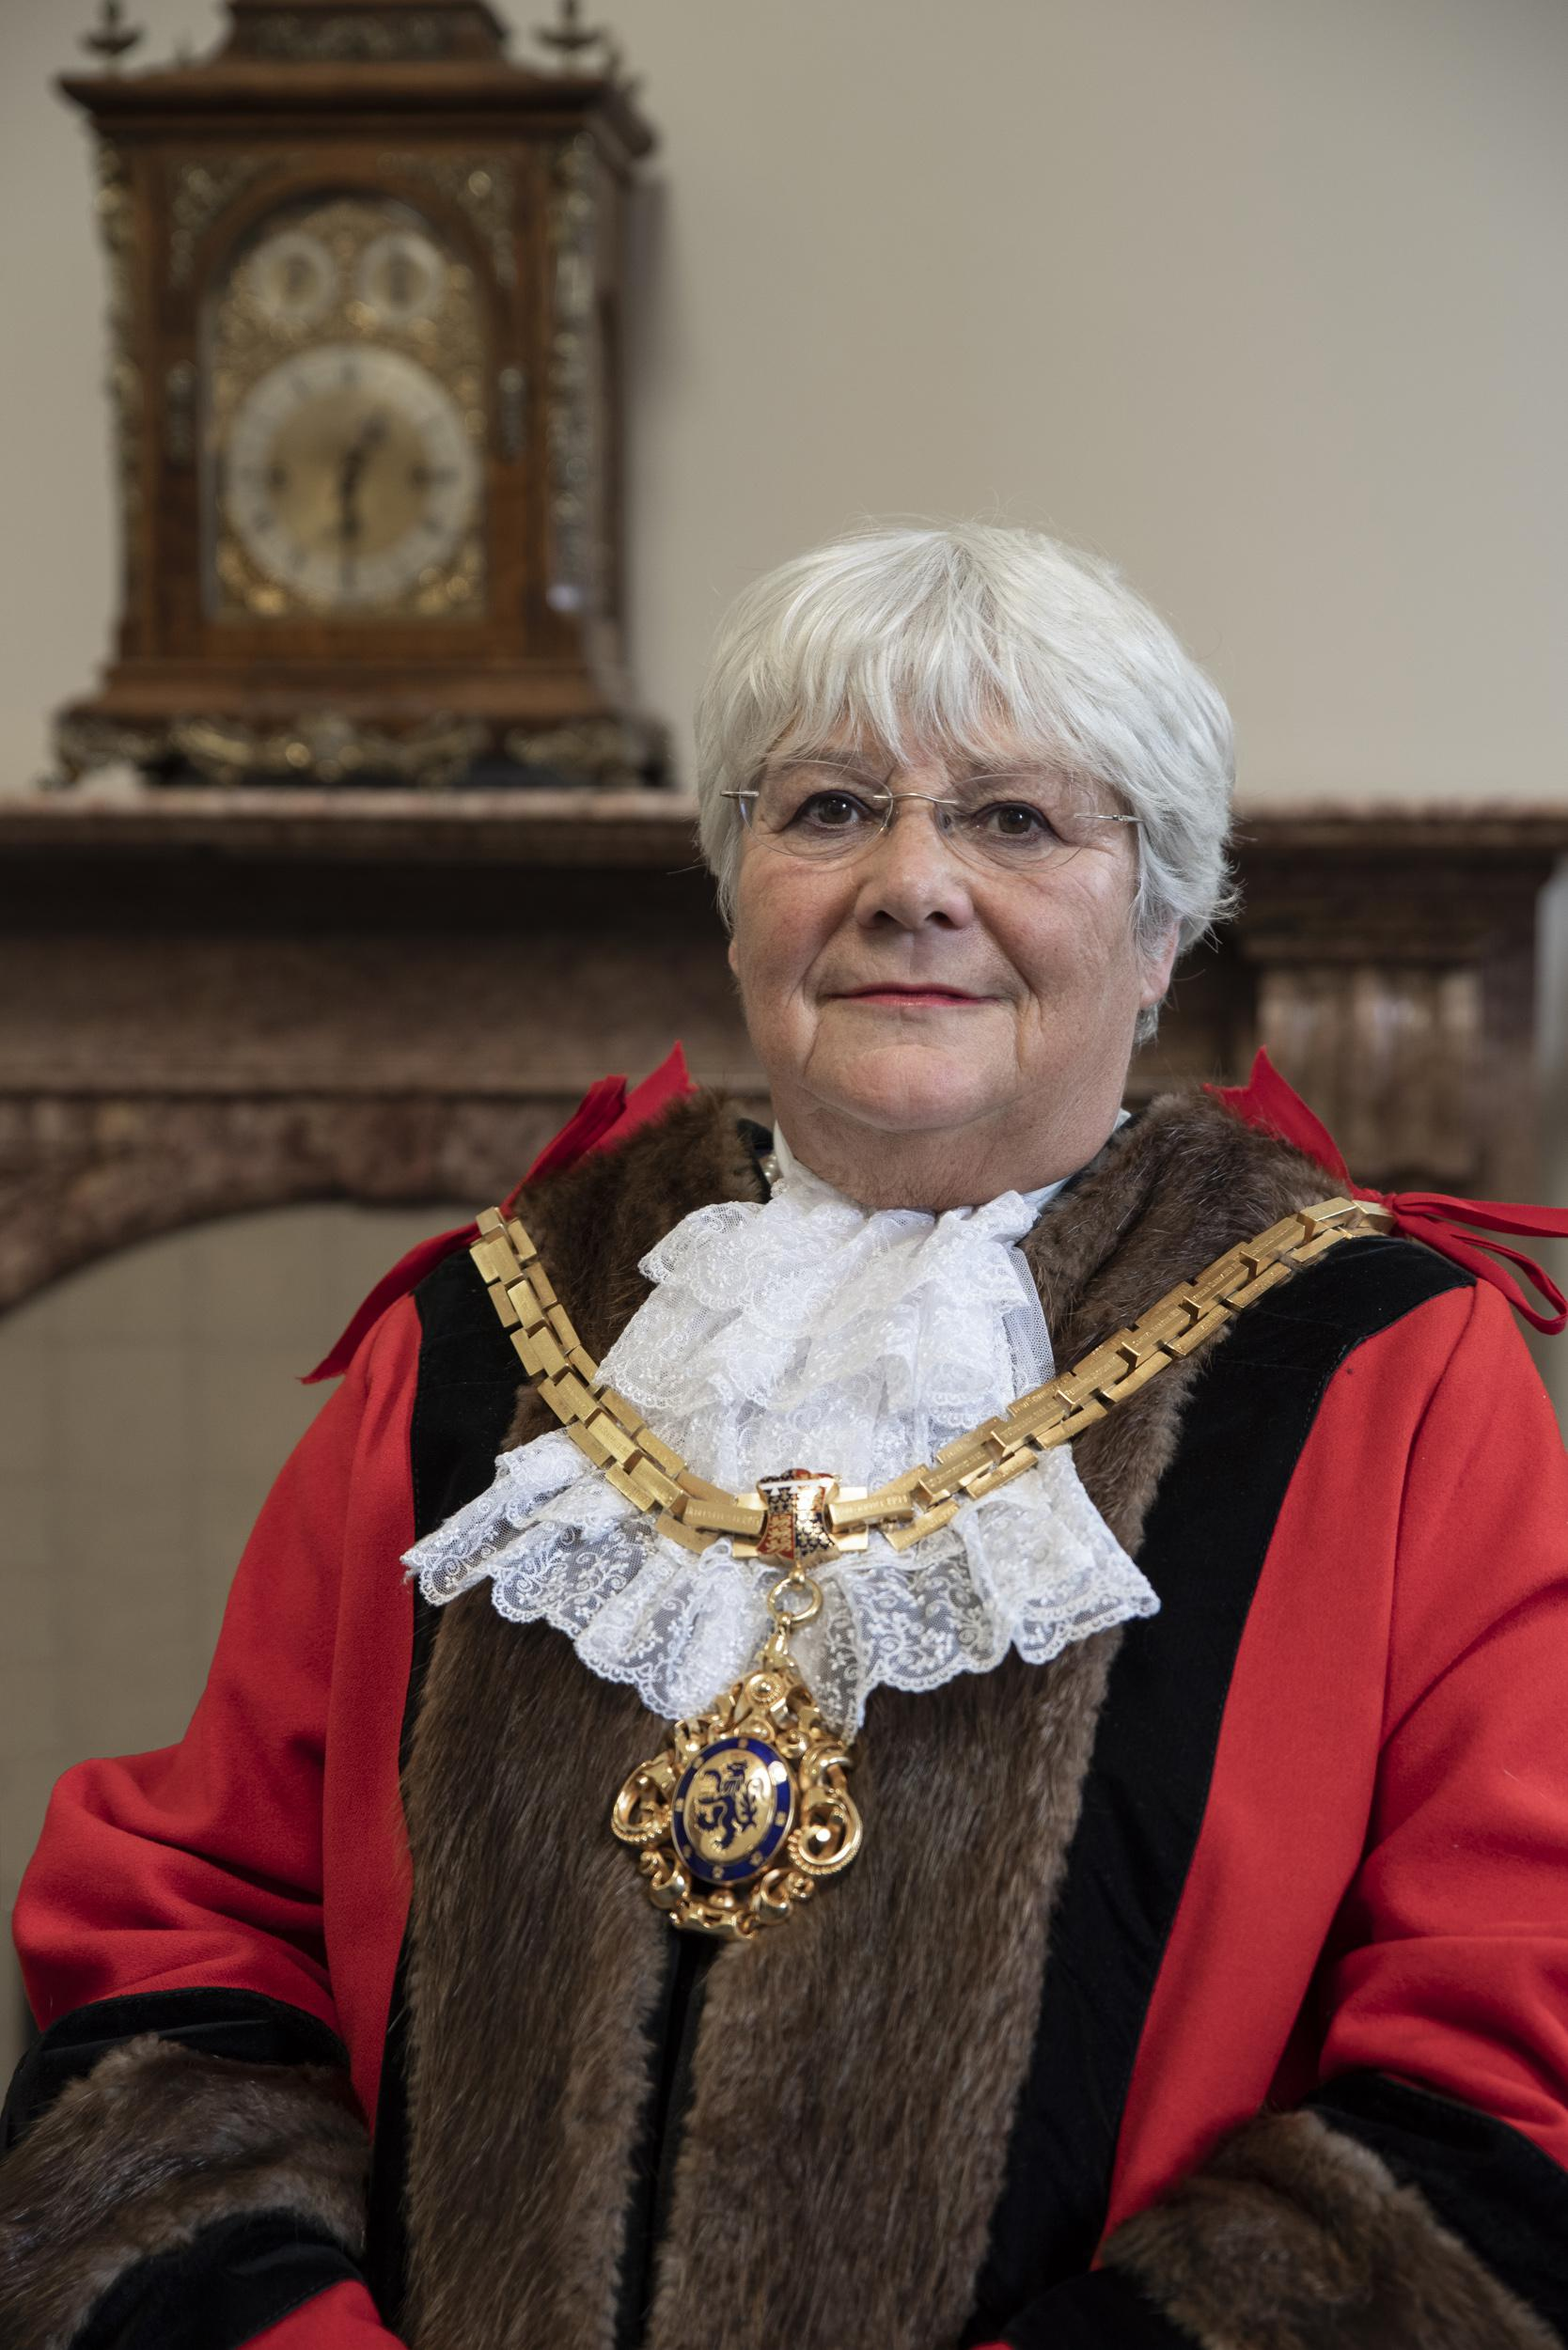 The Worshipful the Mayor of Macclesfield, Councillor Janet Jackson MBE